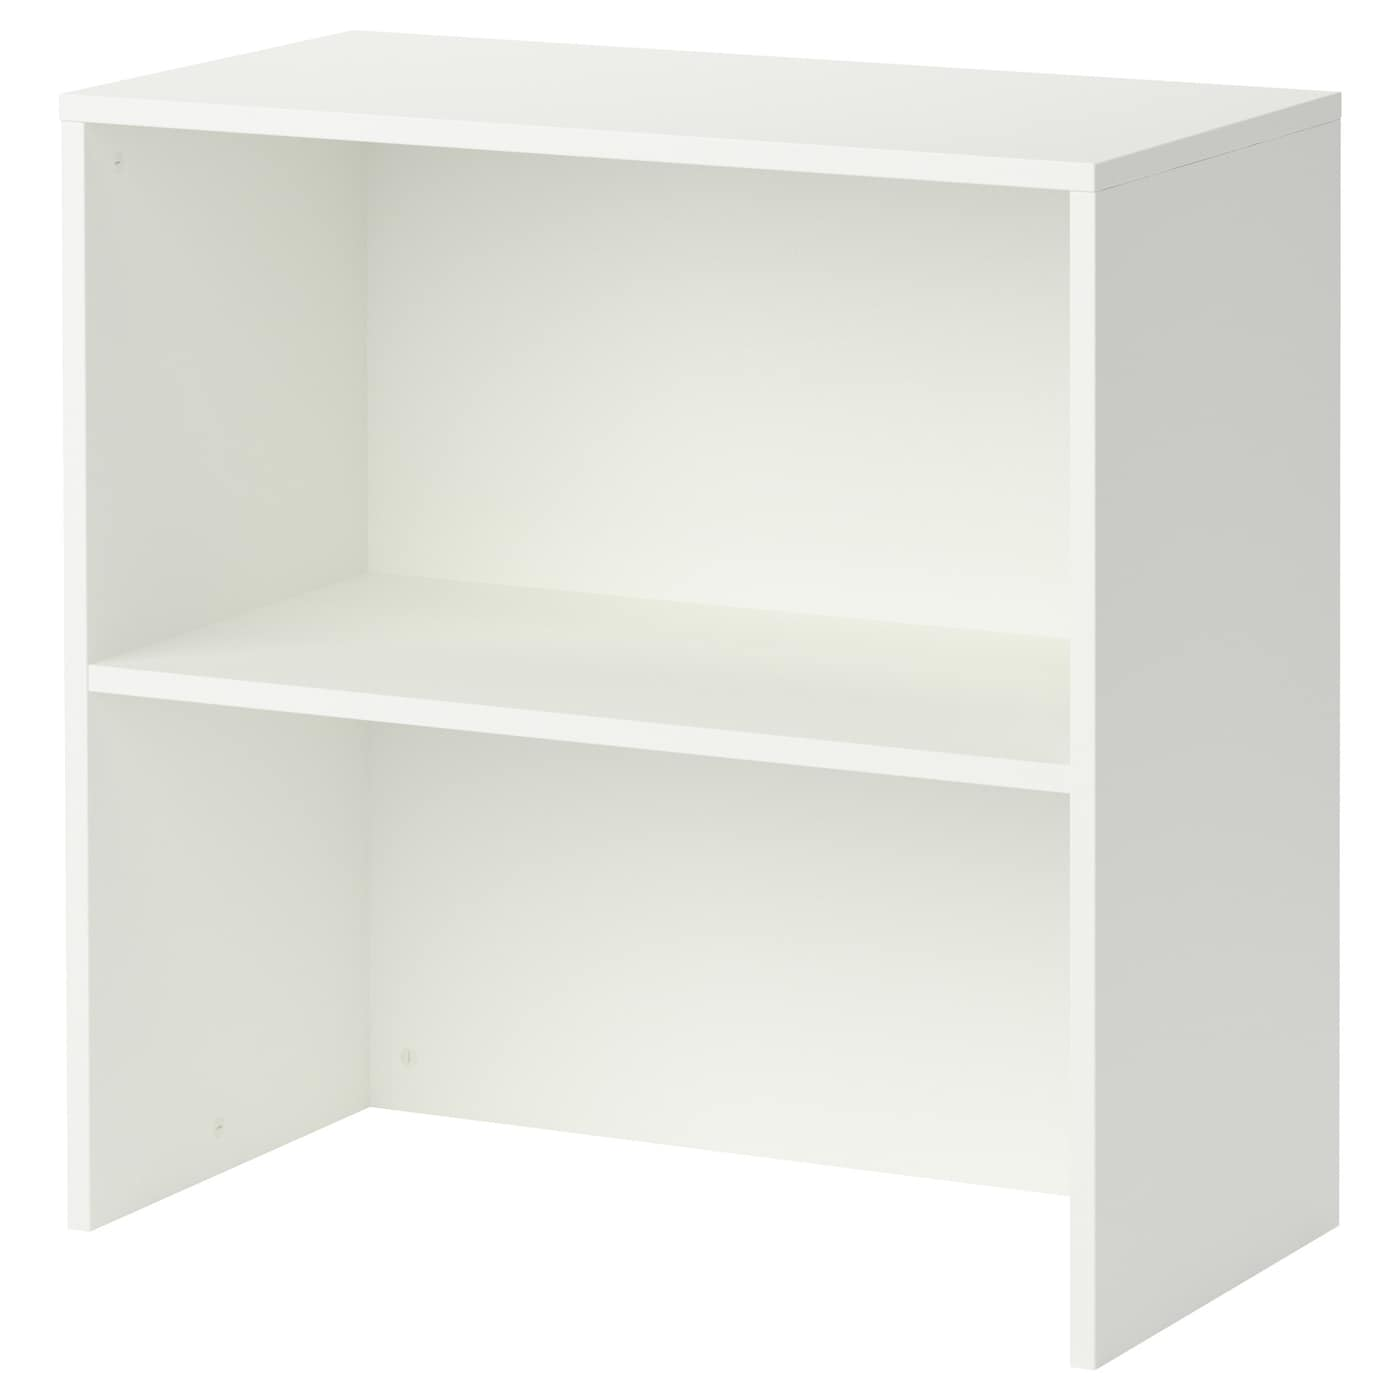 galant add on unit white 80x80 cm ikea. Black Bedroom Furniture Sets. Home Design Ideas